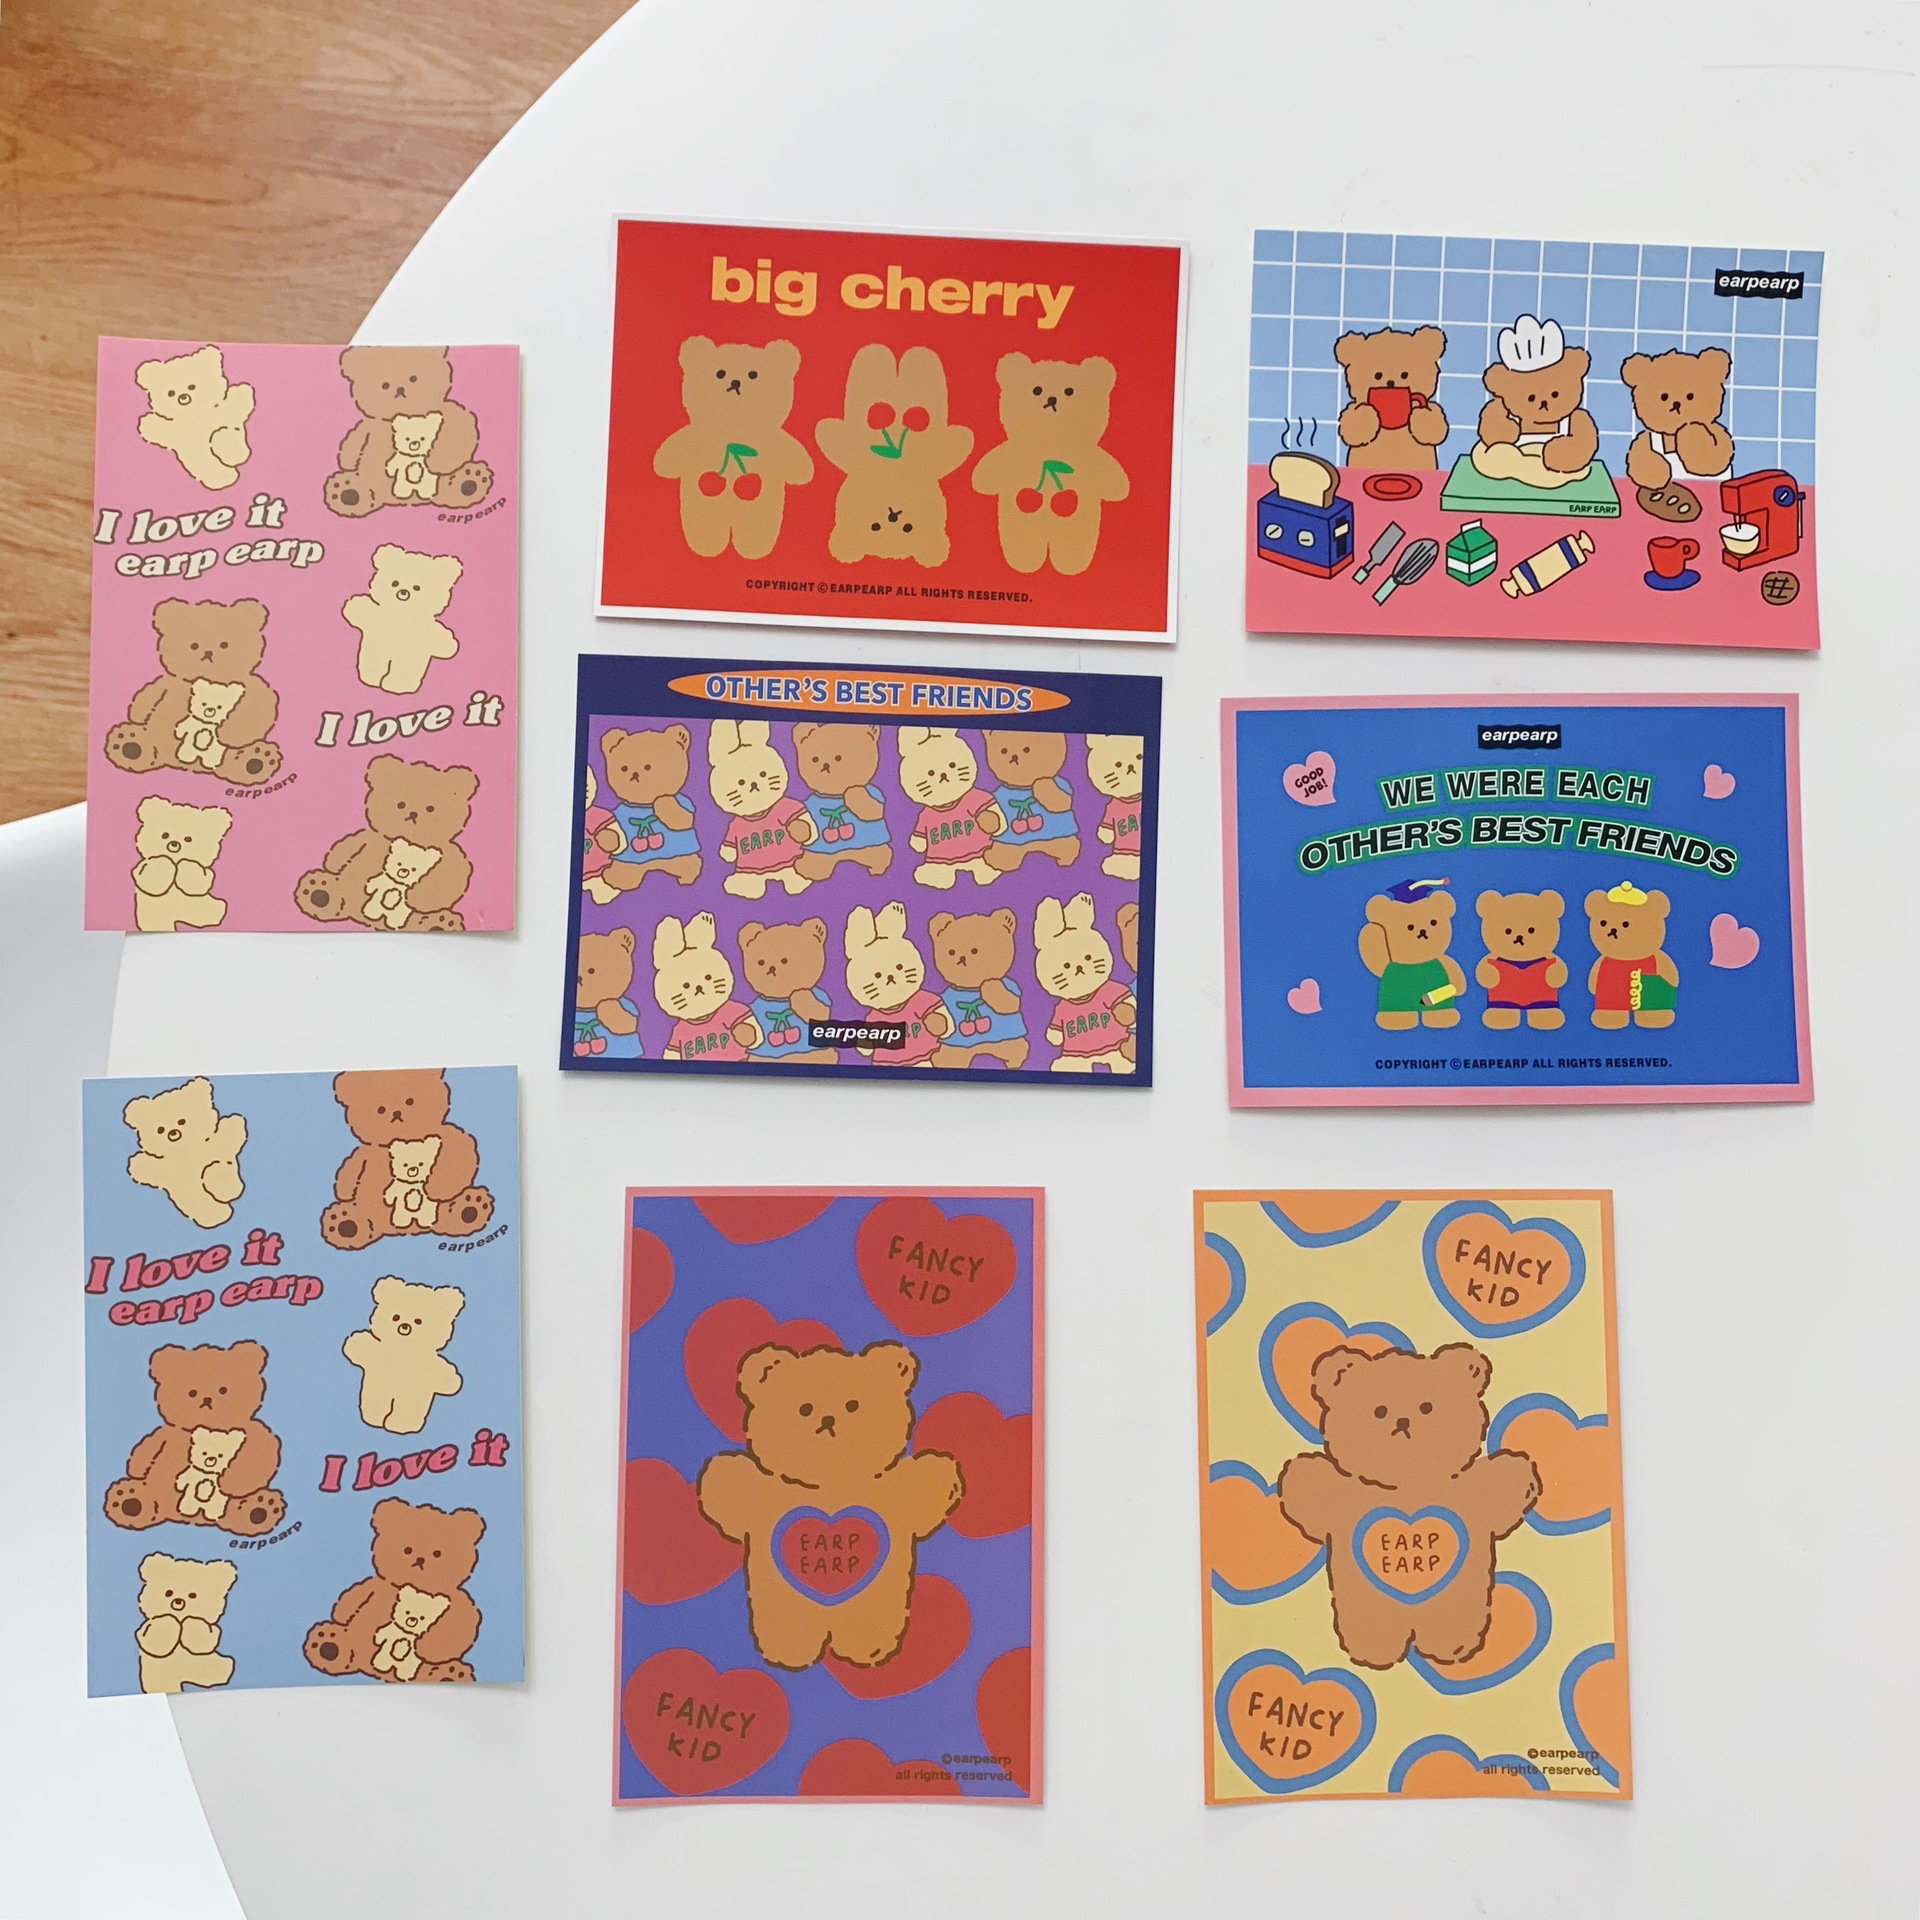 4 Sheets Cartoon Bear Cute Card Set Postcard Color Double Sided Creative Greeting Blessing Card Room